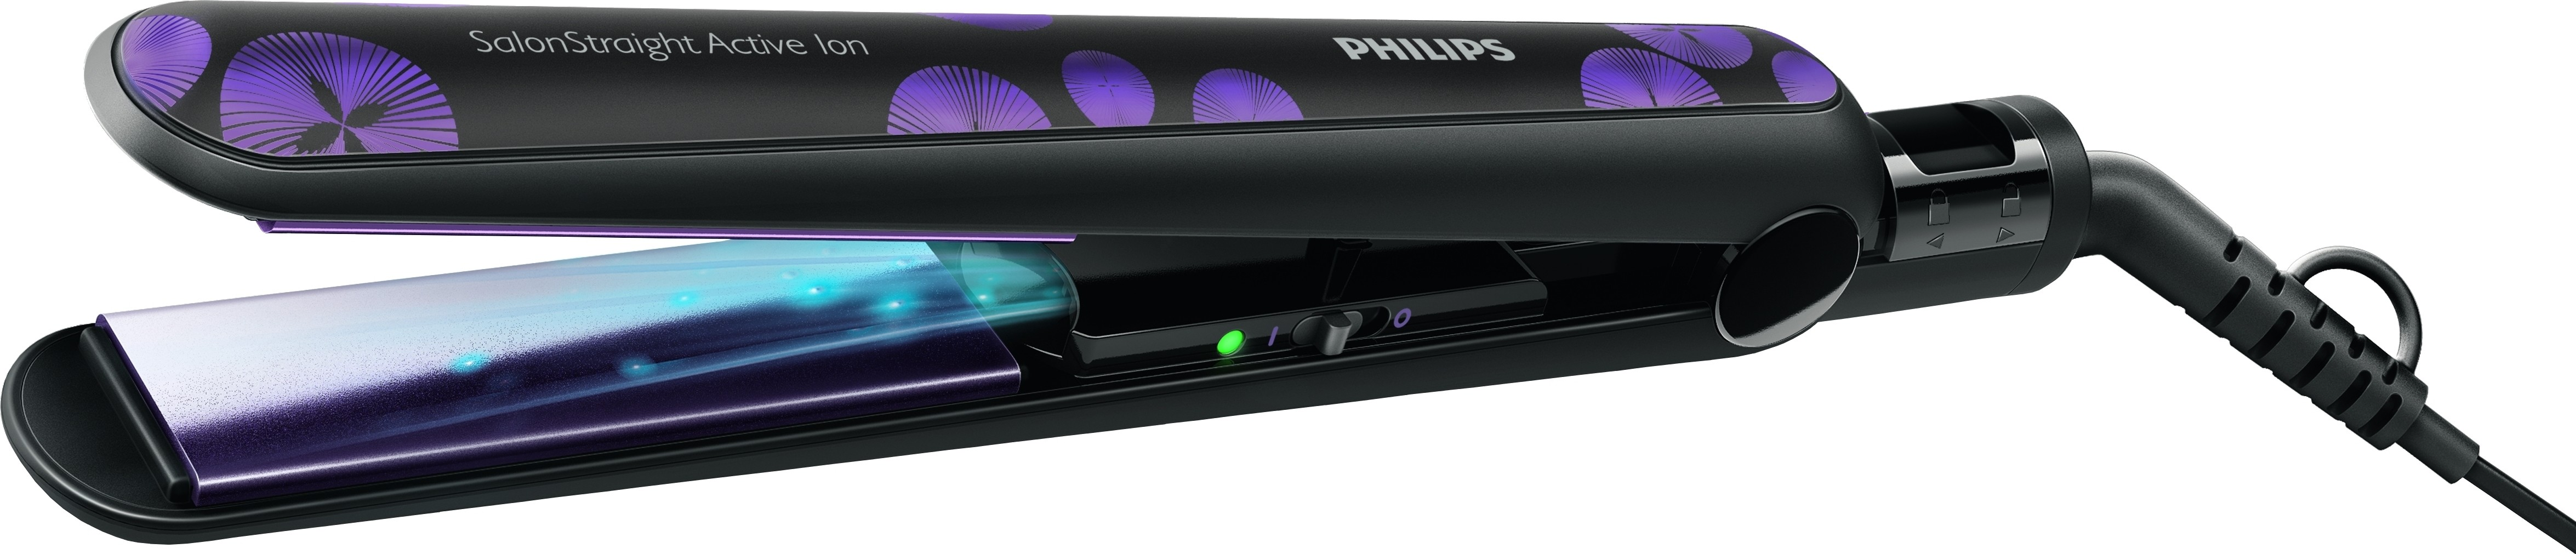 Утюжок для волос philips salonstraight active ion